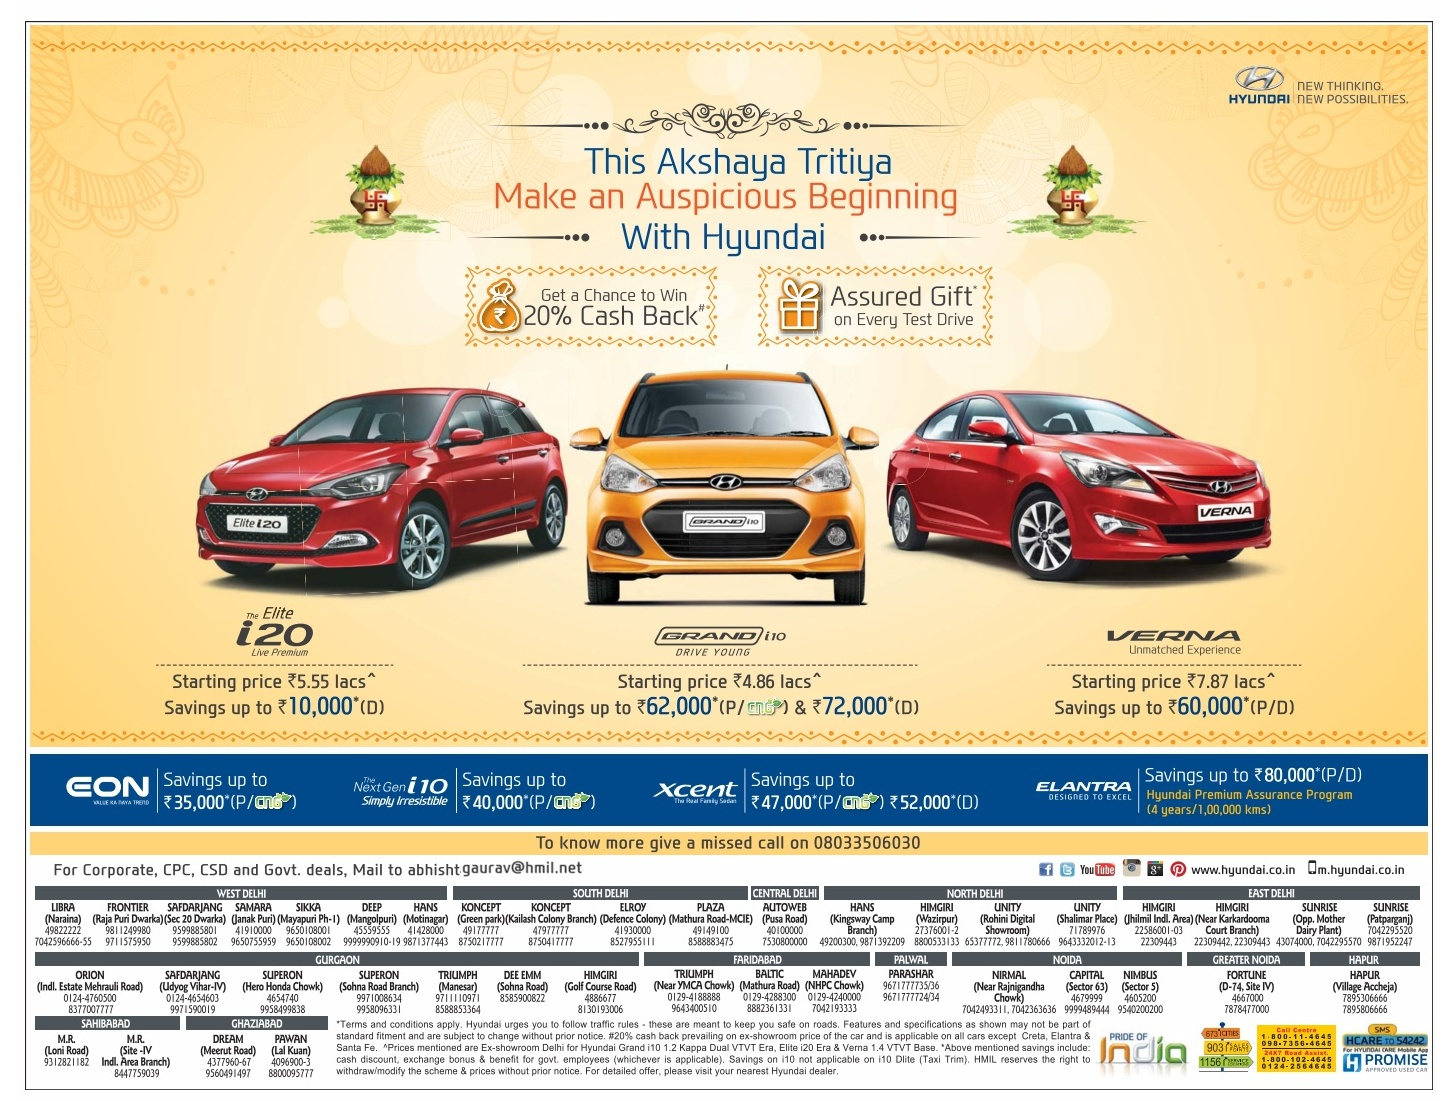 Amazing Akshaya Tritiya offers on Hyundai Cars | May 2016 festival discount offers.